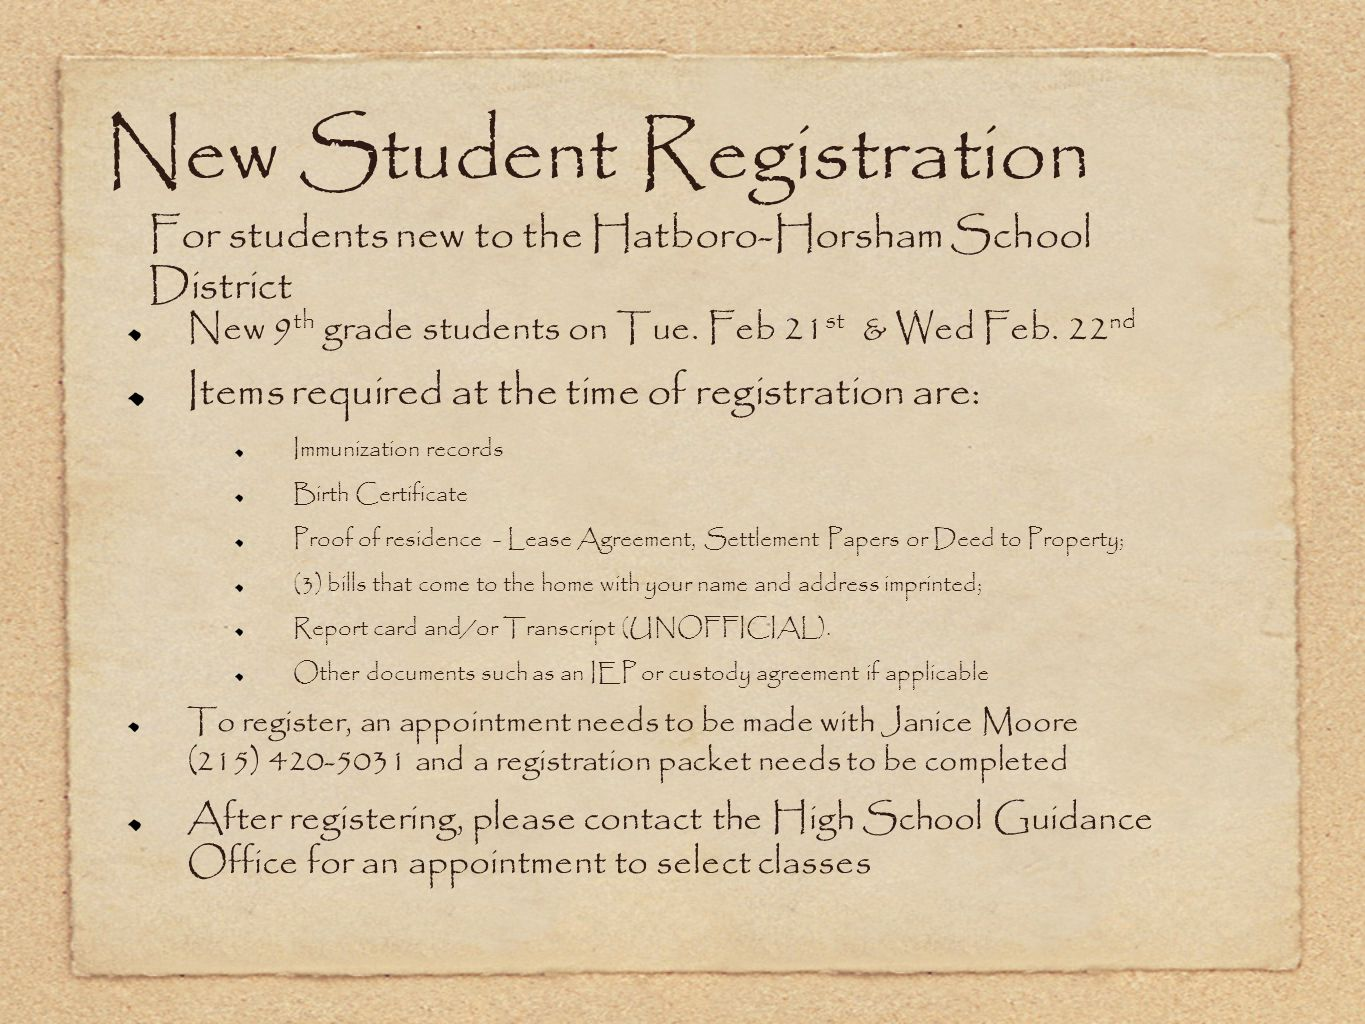 New Student Registration For students new to the Hatboro-Horsham School District